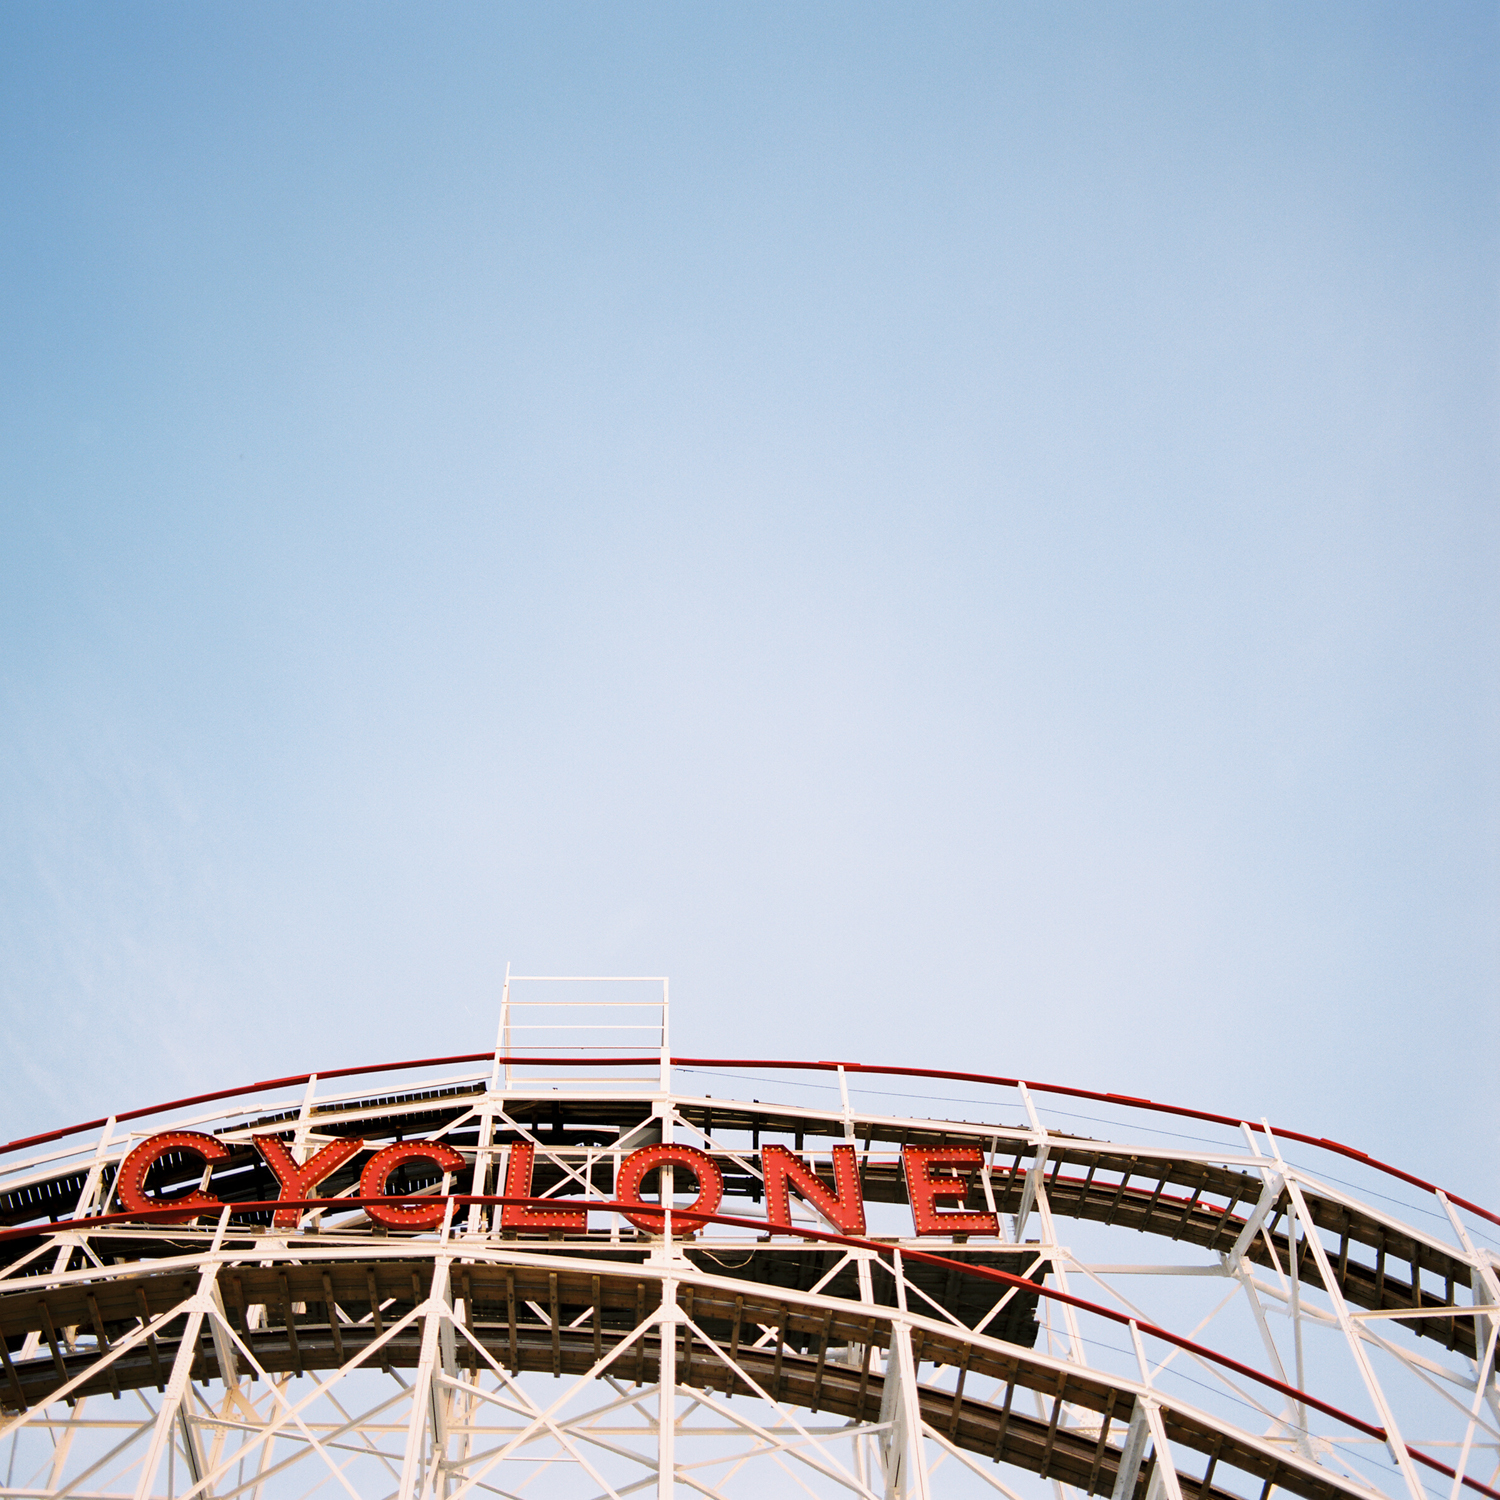 Coney Island-Siousca Photography-011.jpg